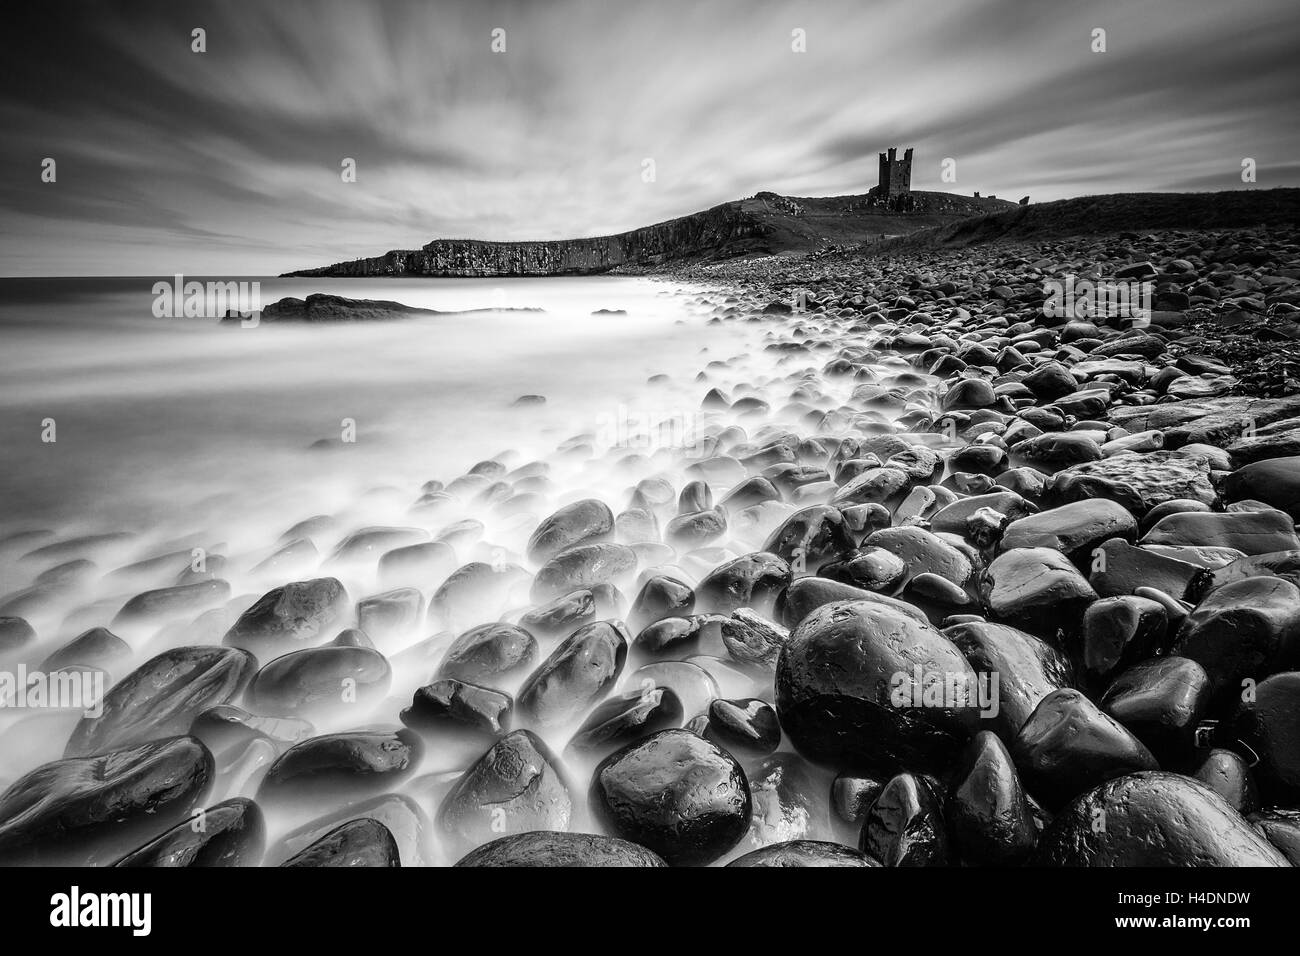 The ruins of Dunstanburgh Castle at Embleton Bay in Northumberland, long exposure from the boulder field rocky shore - Stock Image